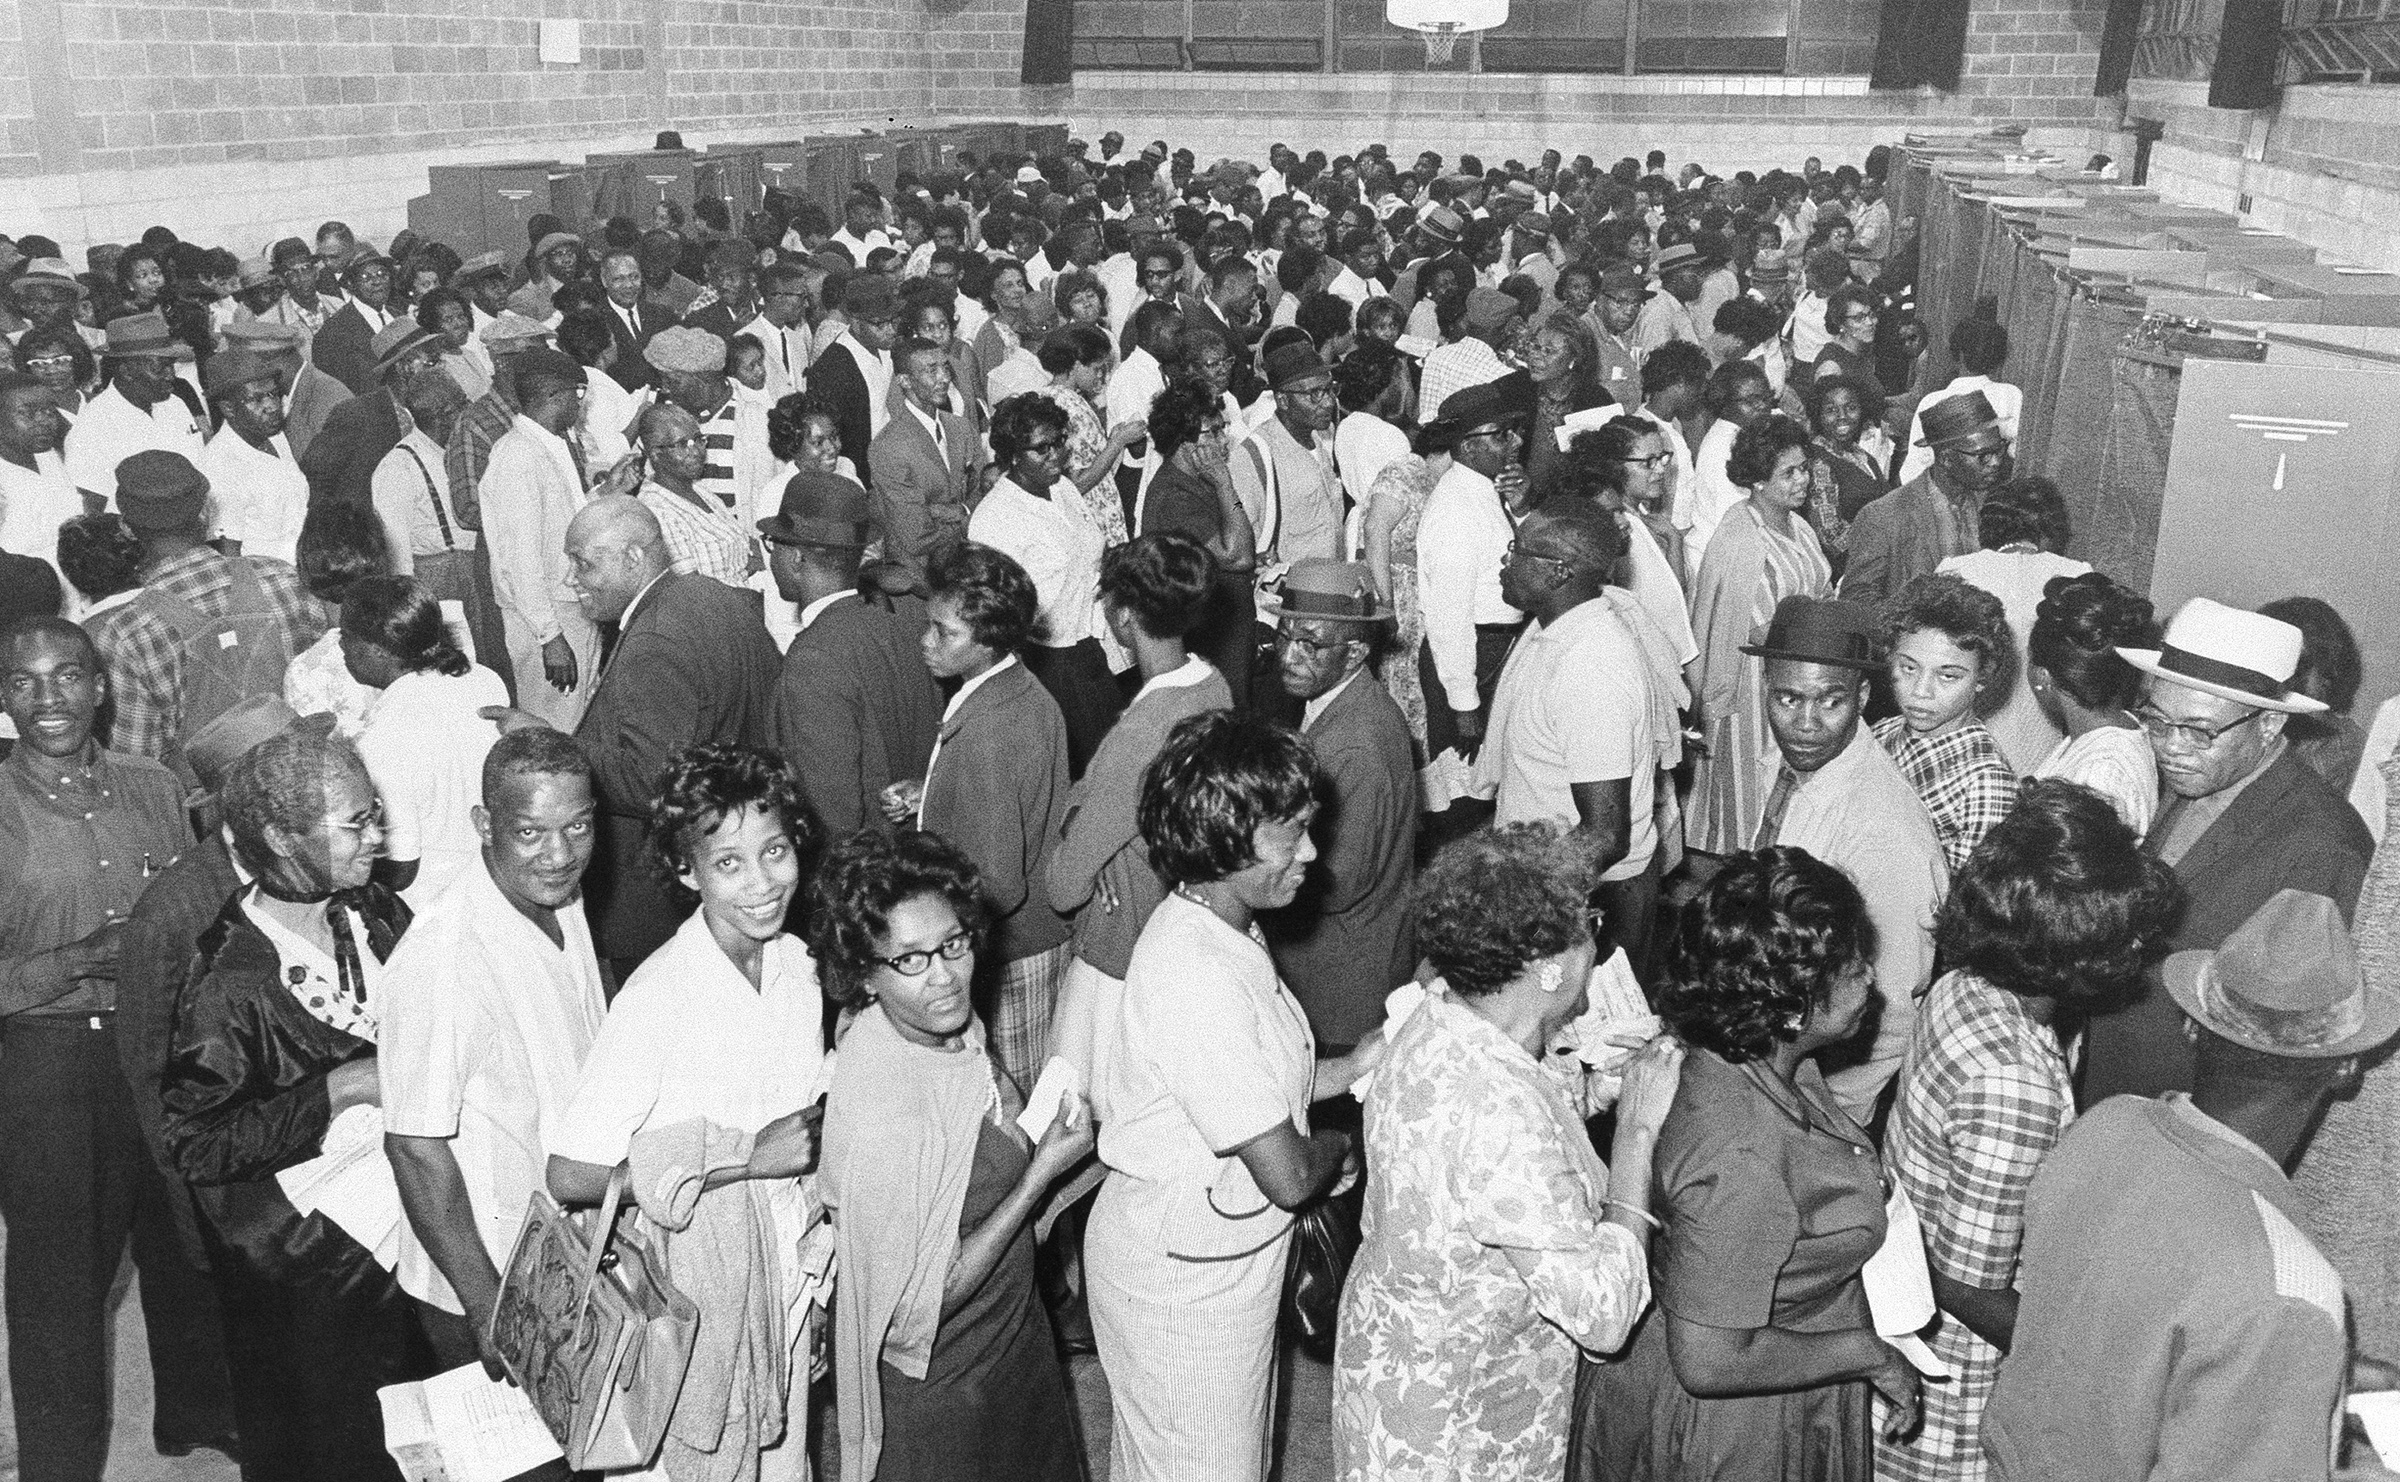 African Americans line up to vote after the passage of the Voting Rights Act in 1965